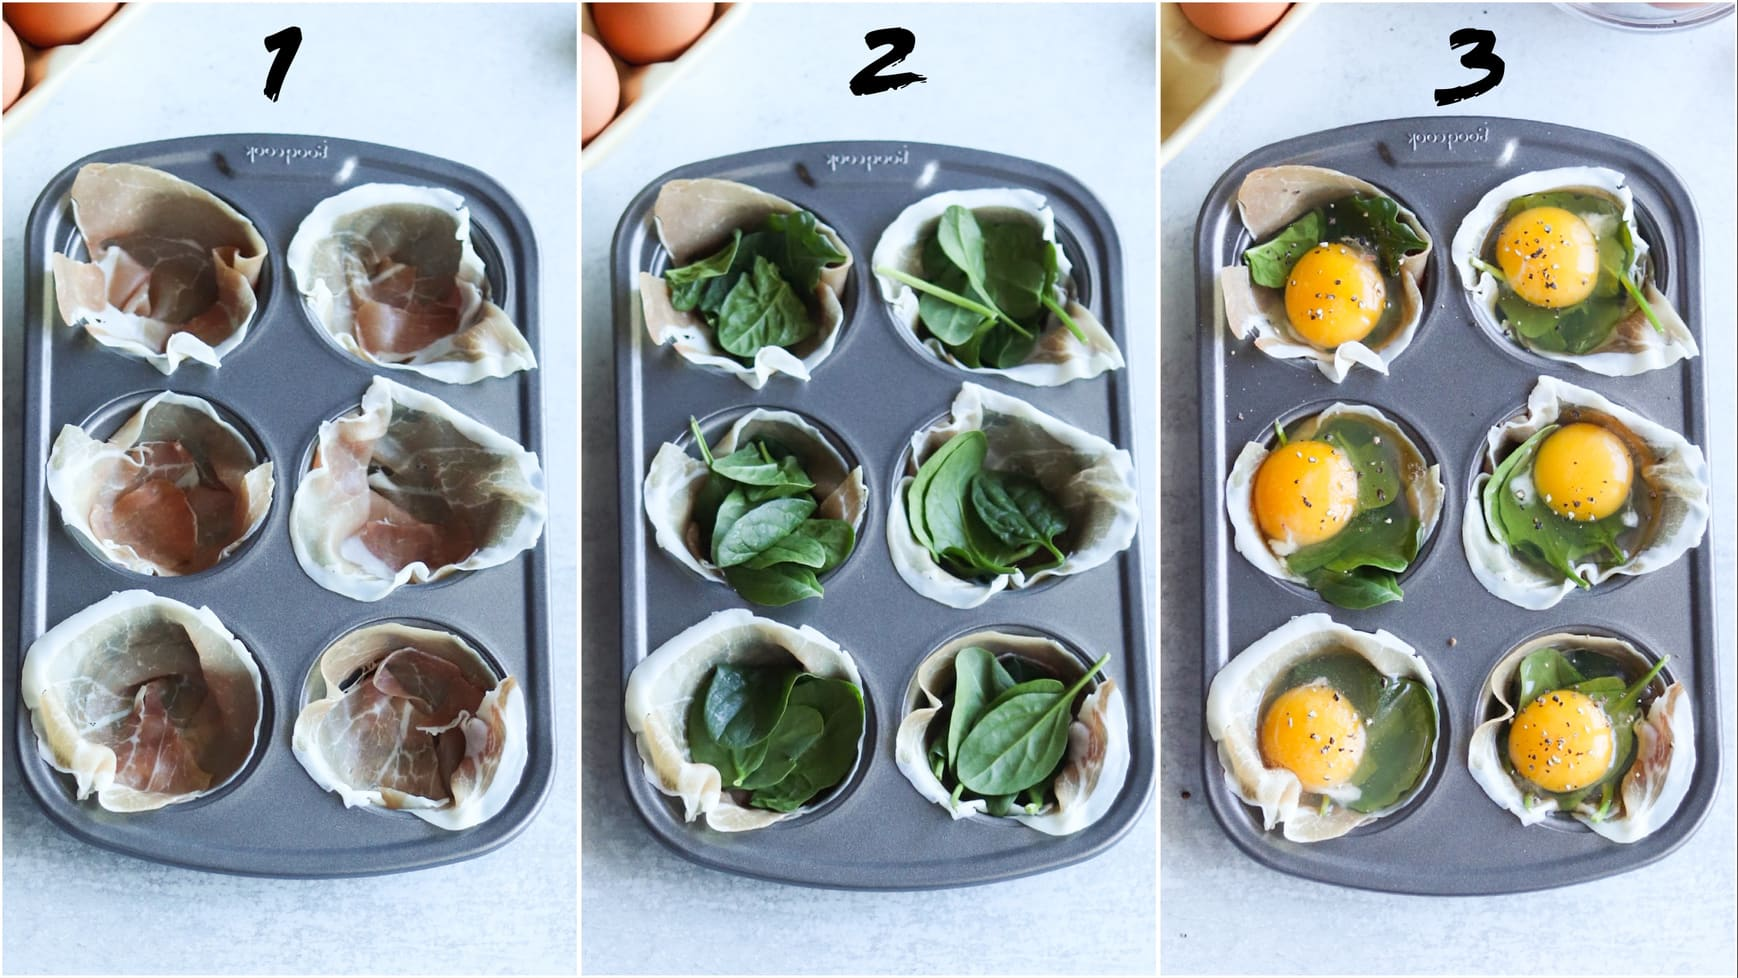 Collage showing step by step process to make the prosciutto egg cups before putting them in the air fryer. First, lay the prosciutto inside each cup, then add spinach, then add eggs.